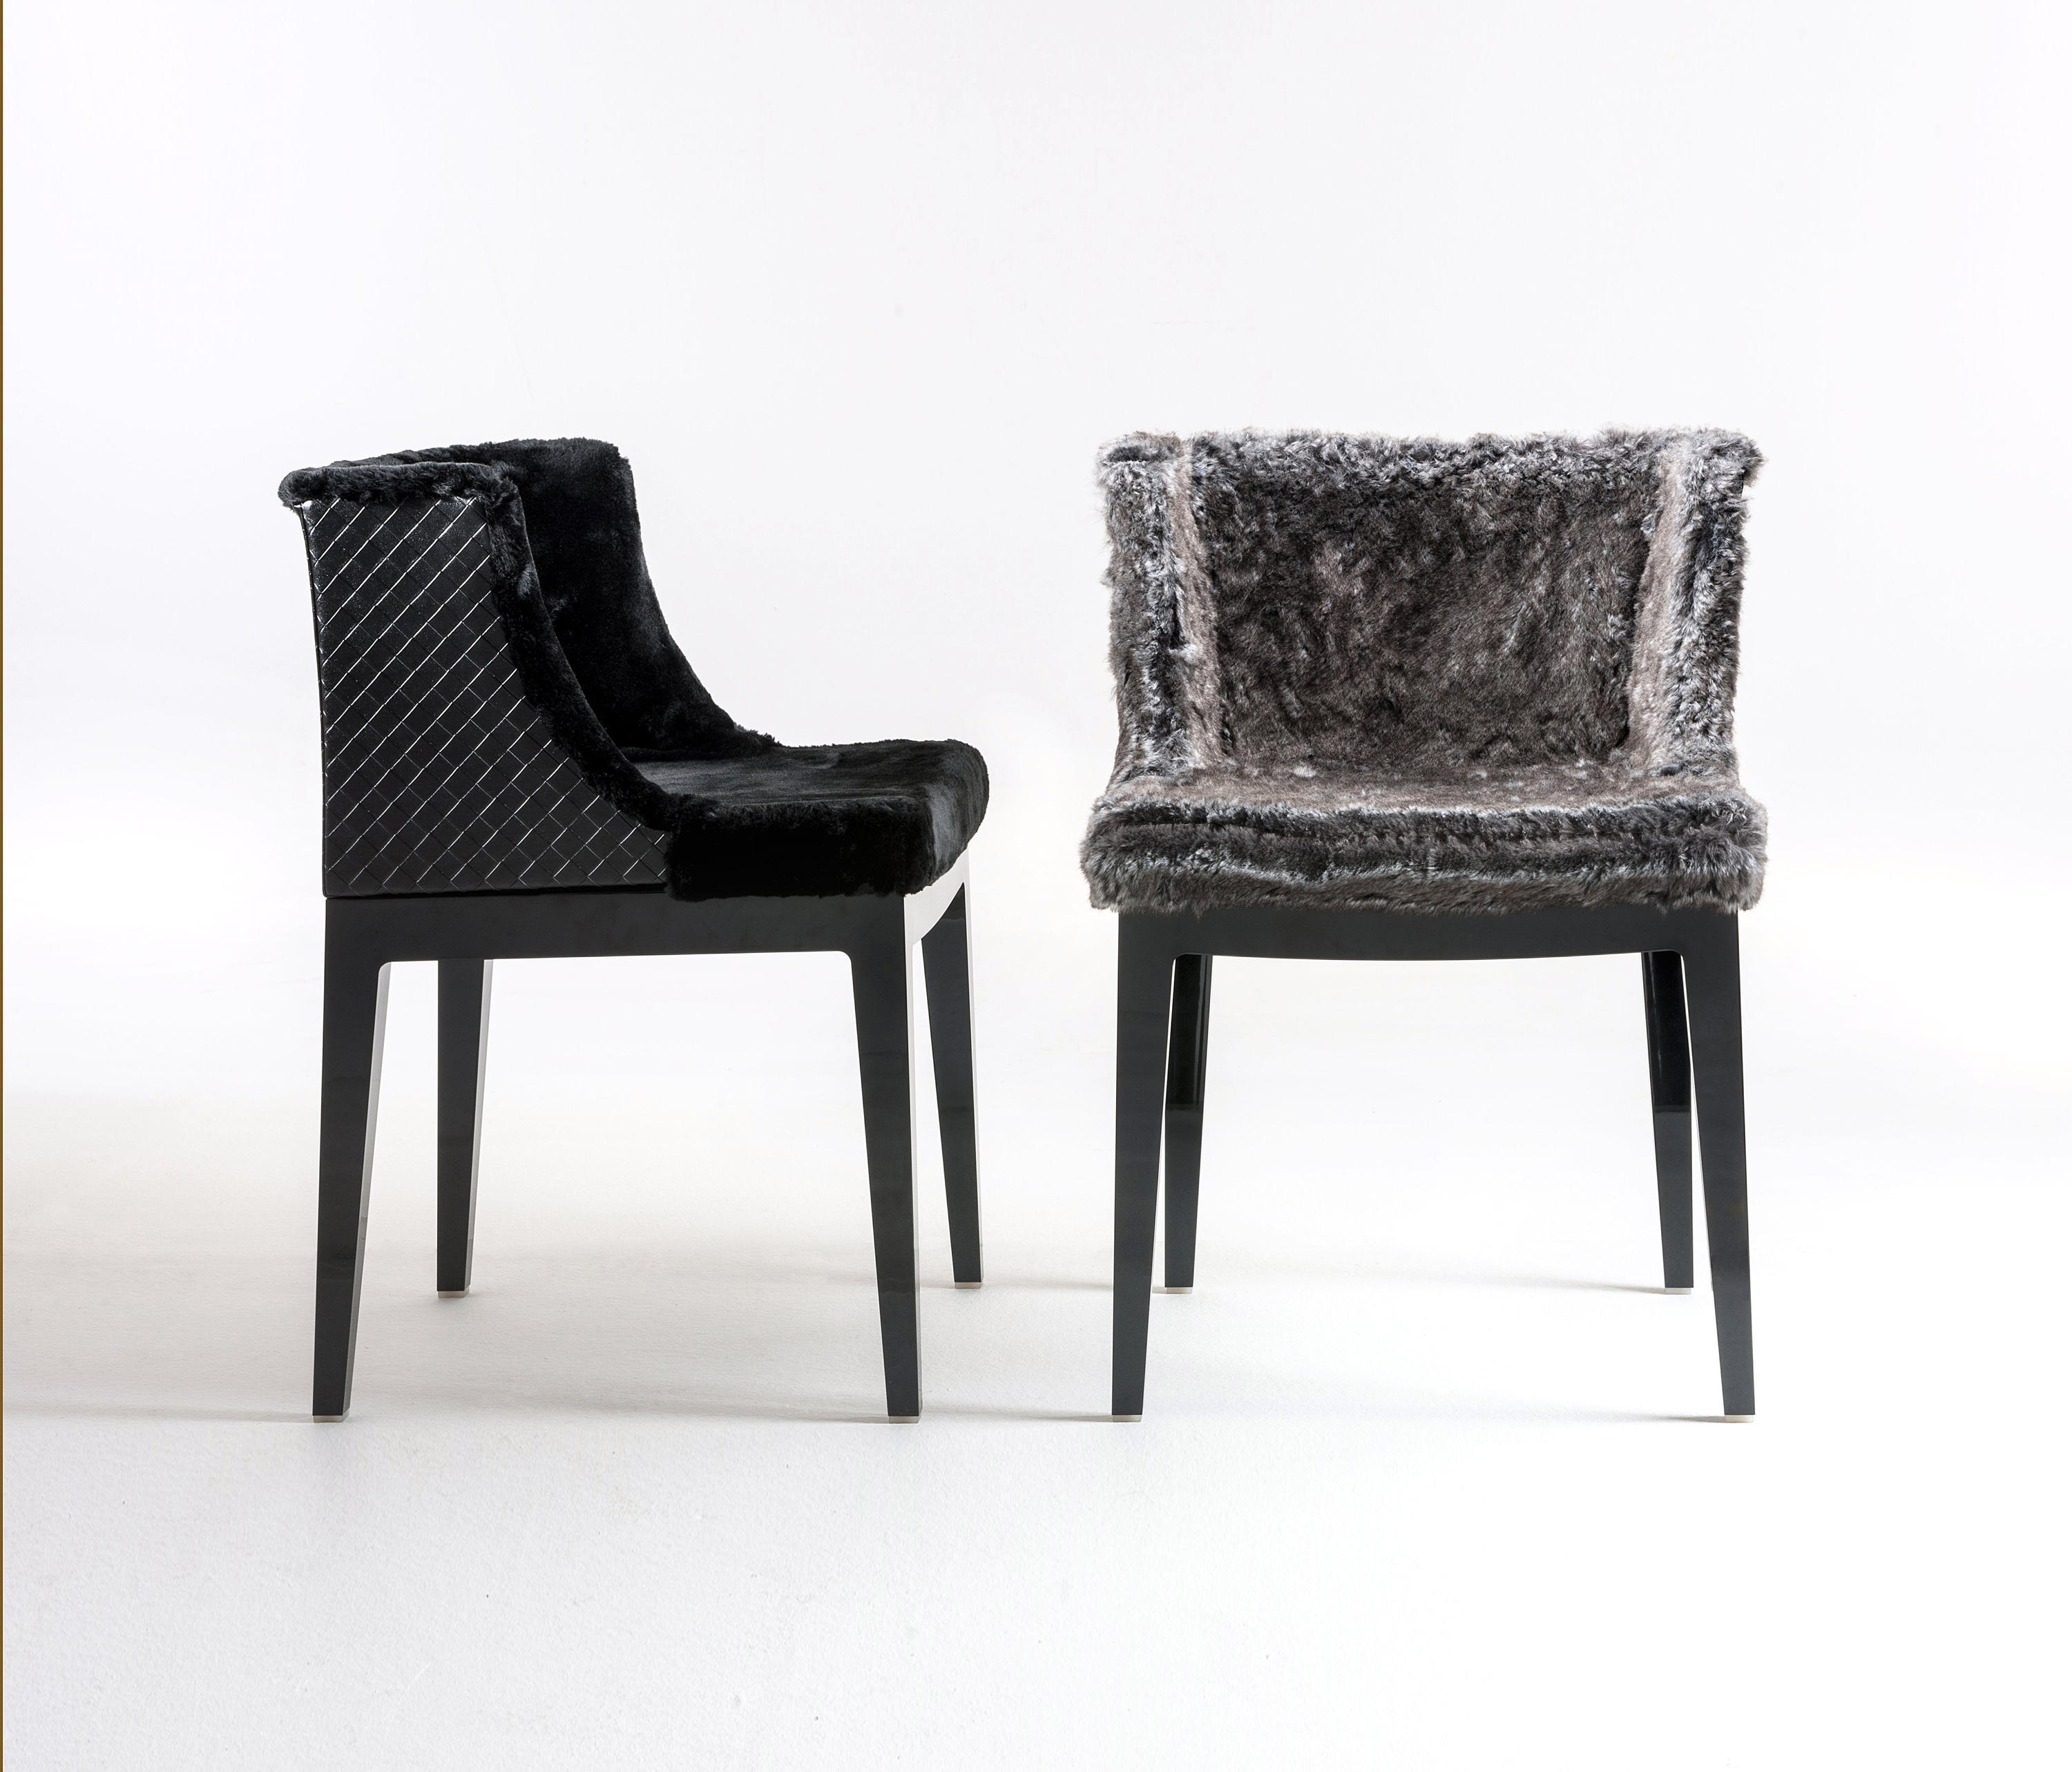 mademoiselle kravitz chaises de restaurant de kartell architonic. Black Bedroom Furniture Sets. Home Design Ideas